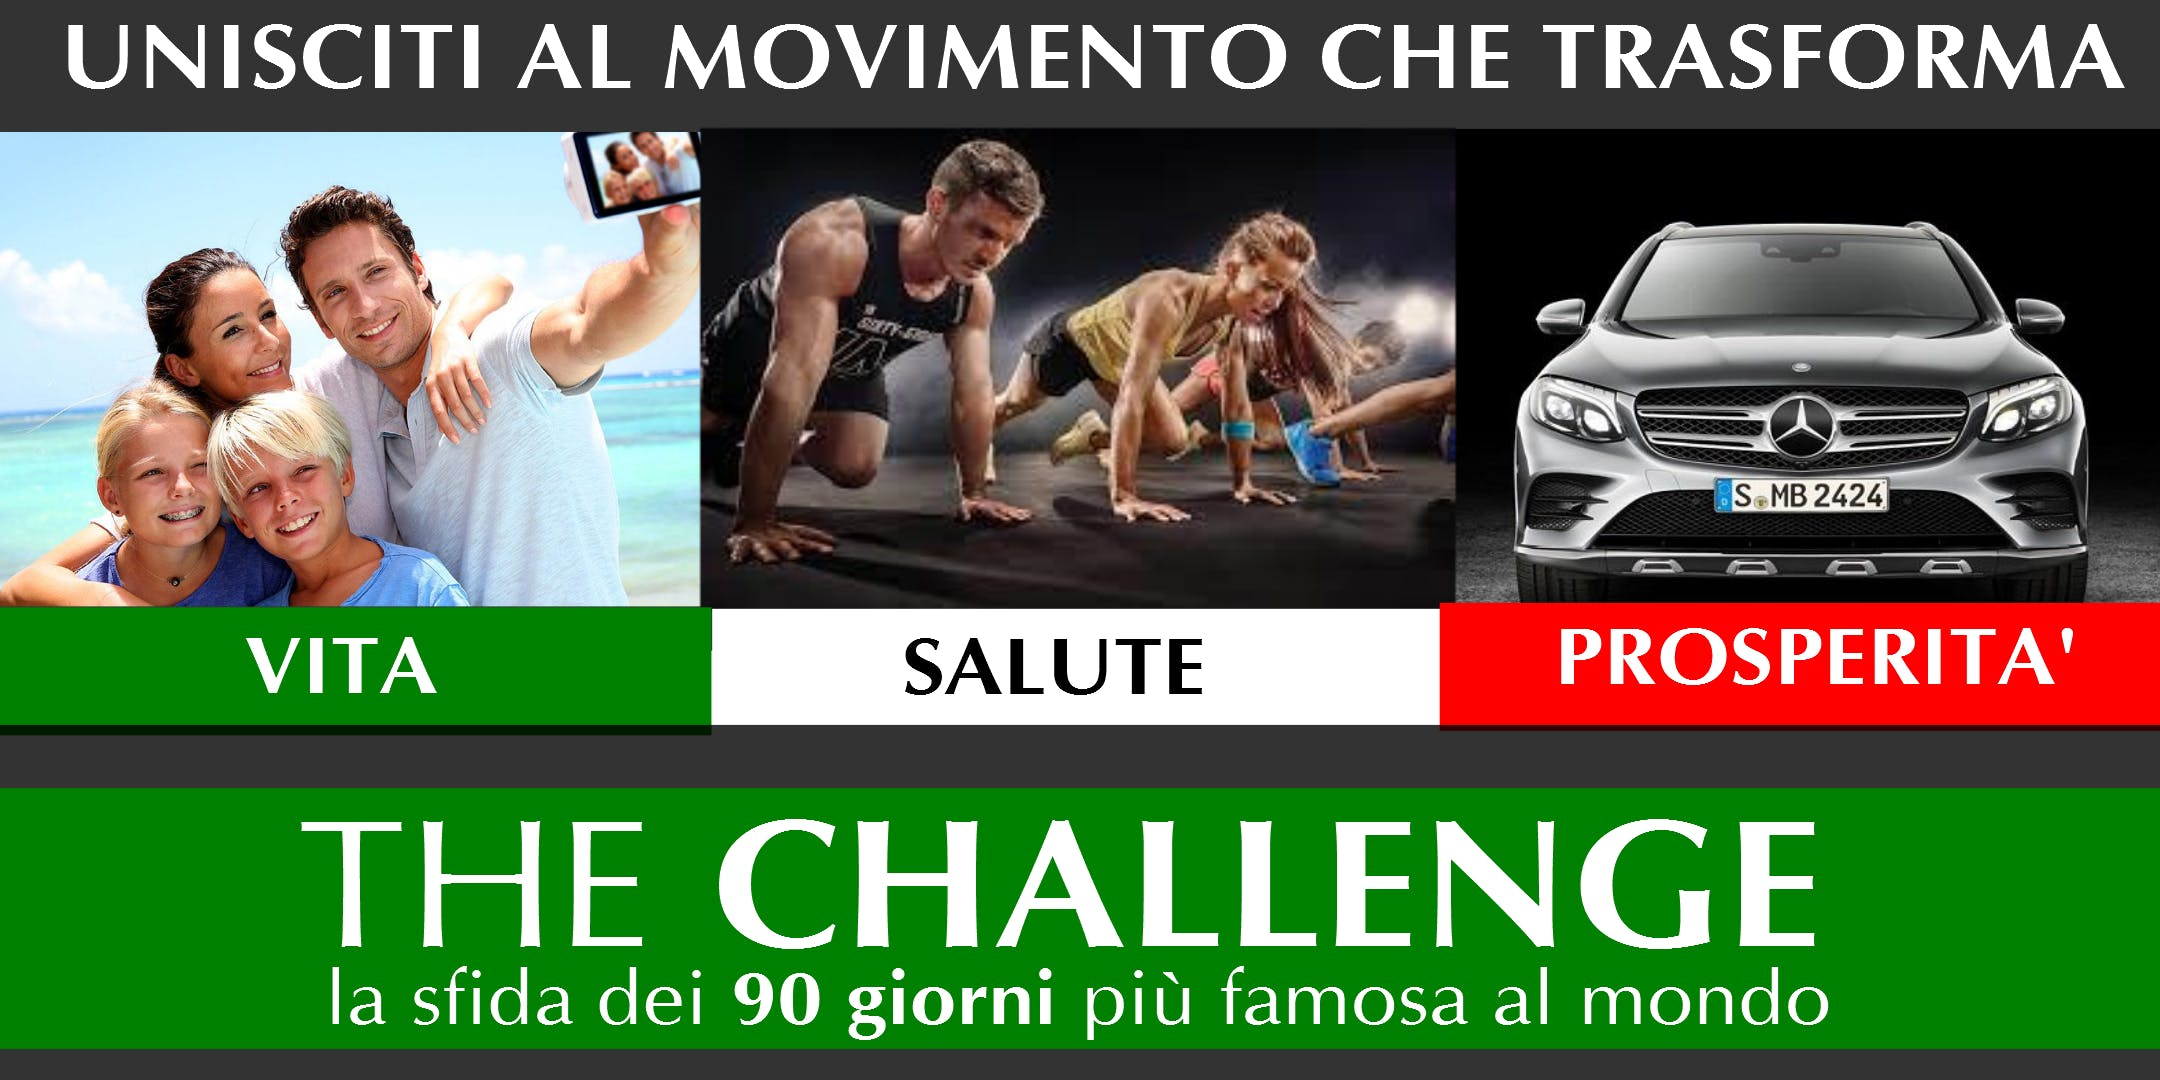 TheCHALLENGE (TO) 26/04/2018